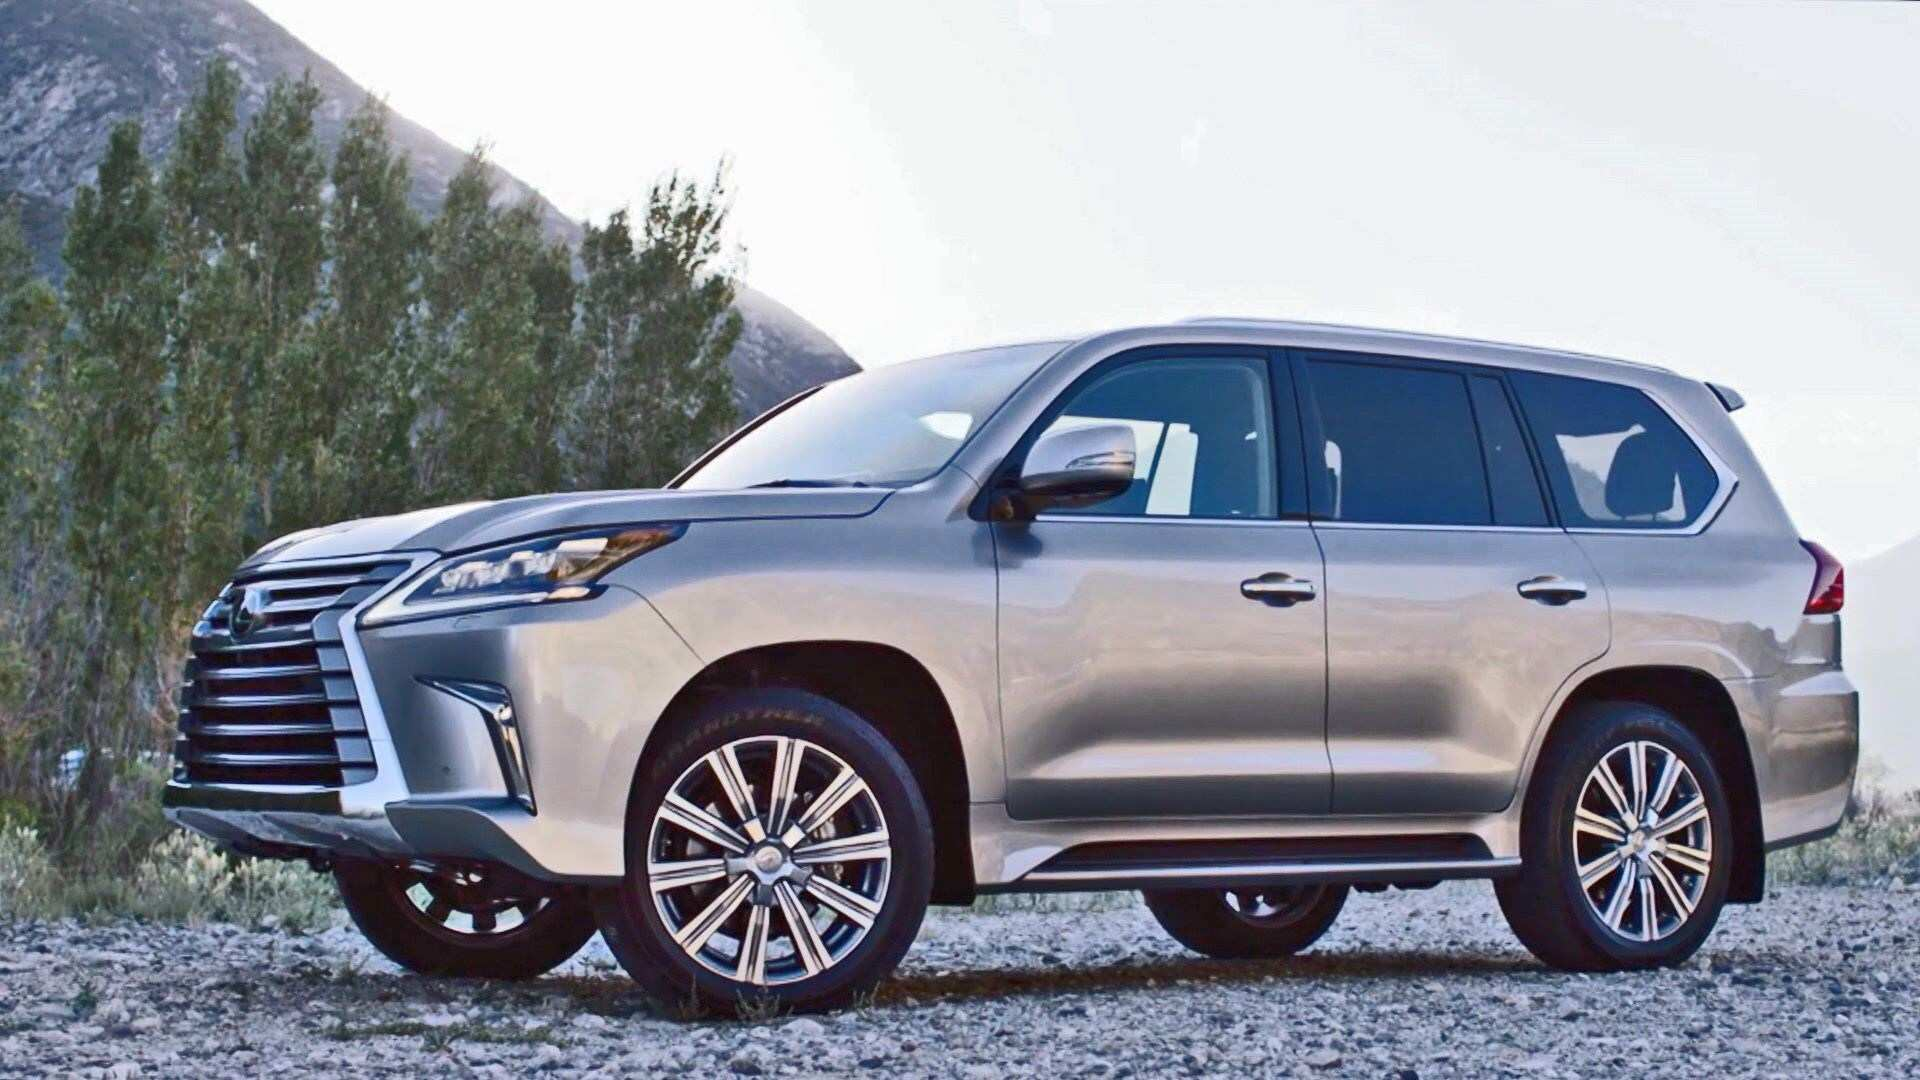 77 Gallery of Toyota Land Cruiser 2020 Exterior Exterior and Interior by Toyota Land Cruiser 2020 Exterior